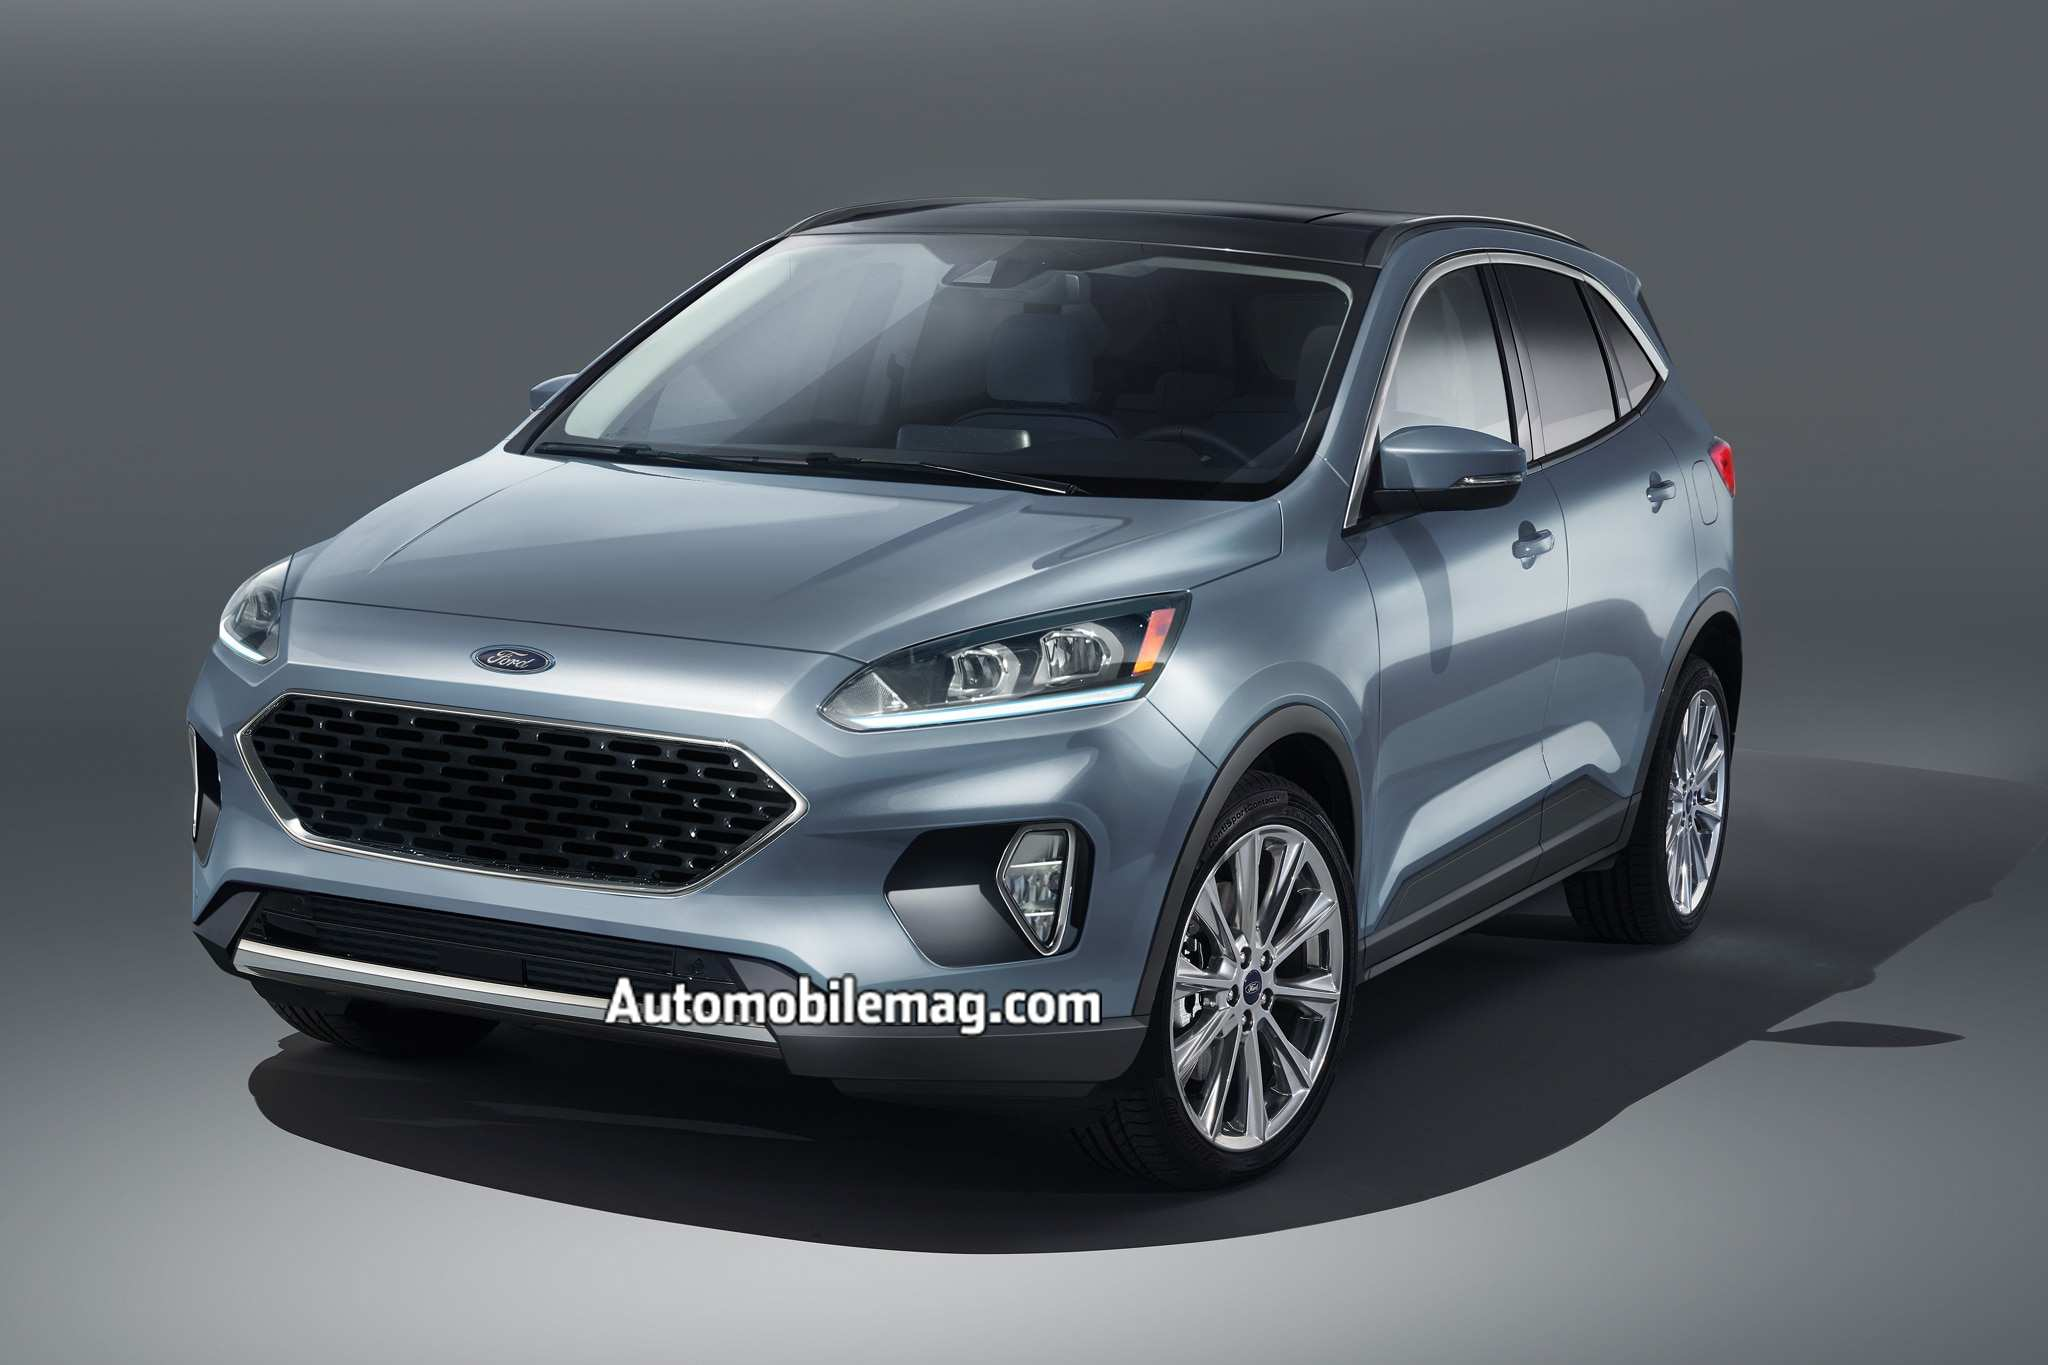 59 The Best 2020 Ford Escape Picture